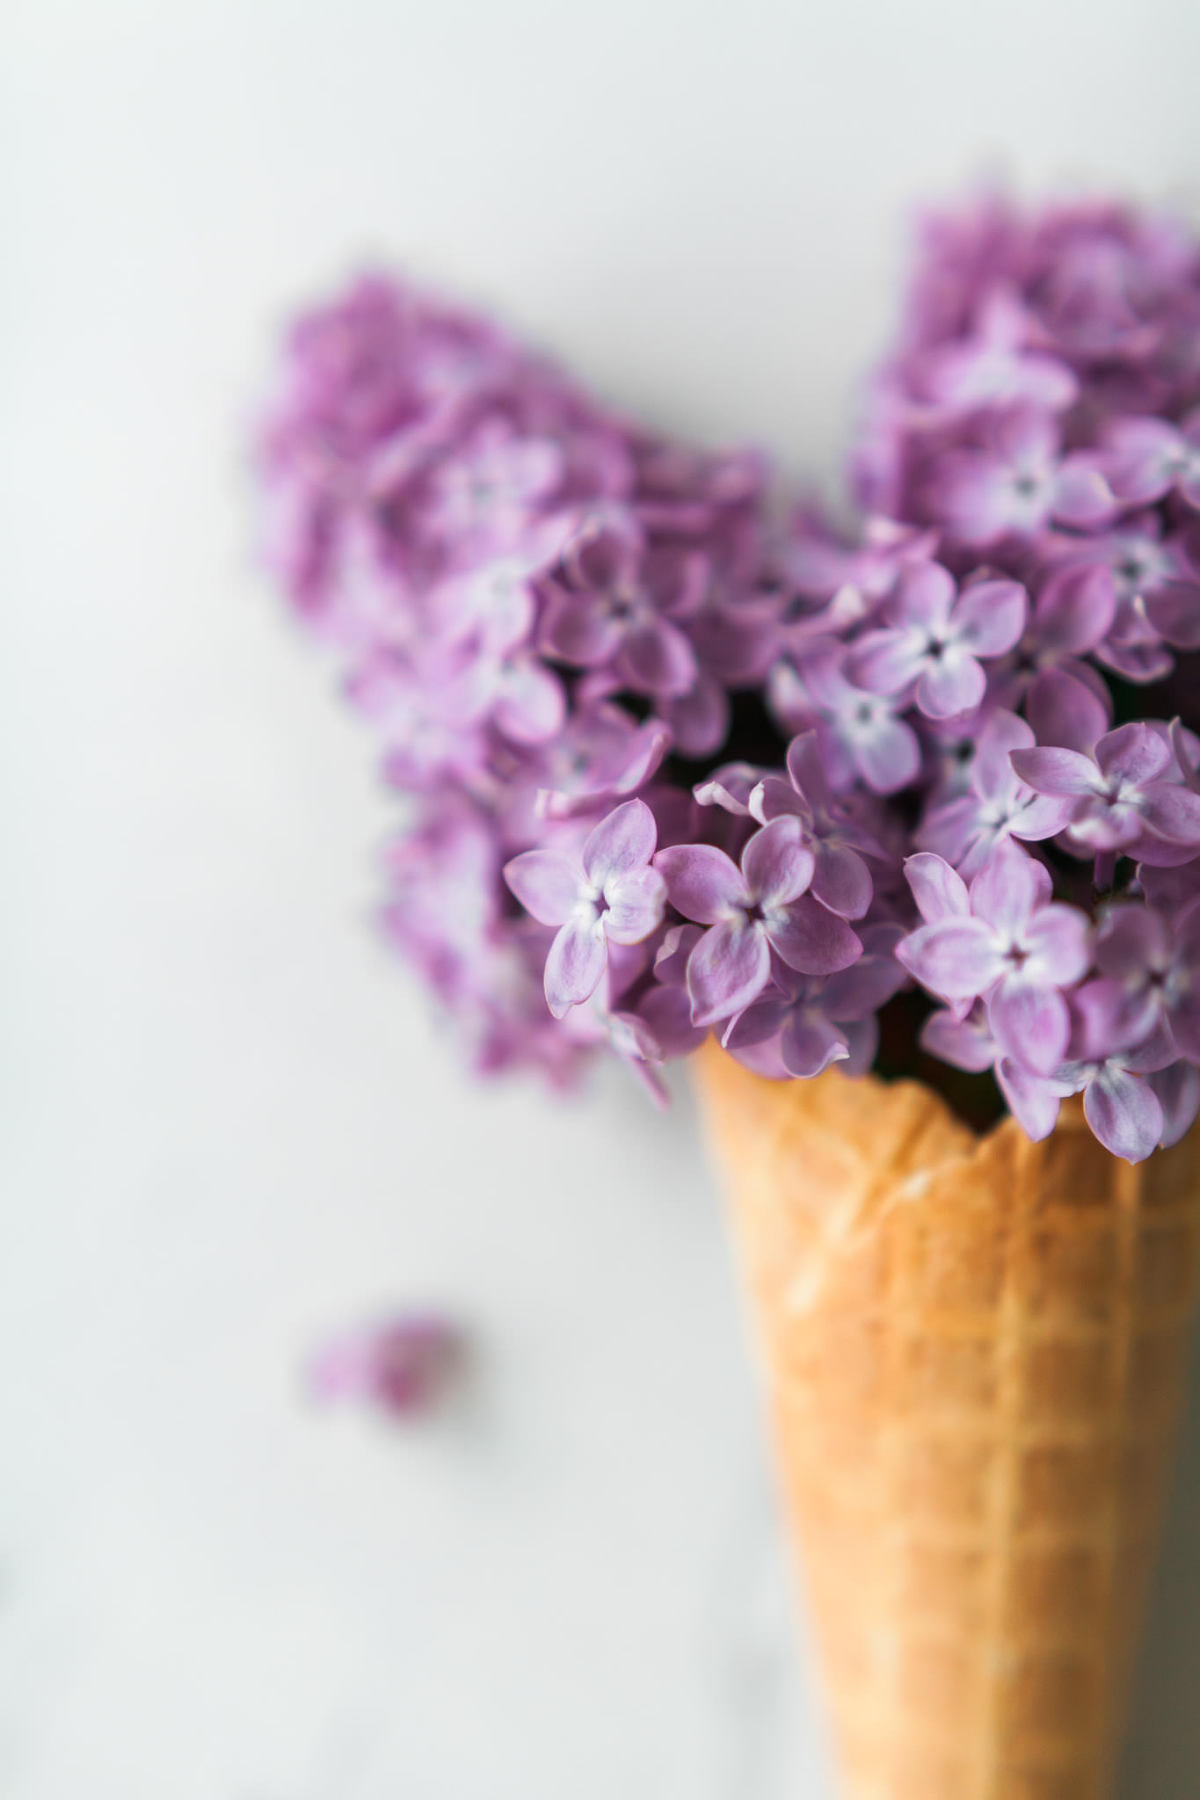 Product photography showing pink lilacs in a waffle ice cream cone